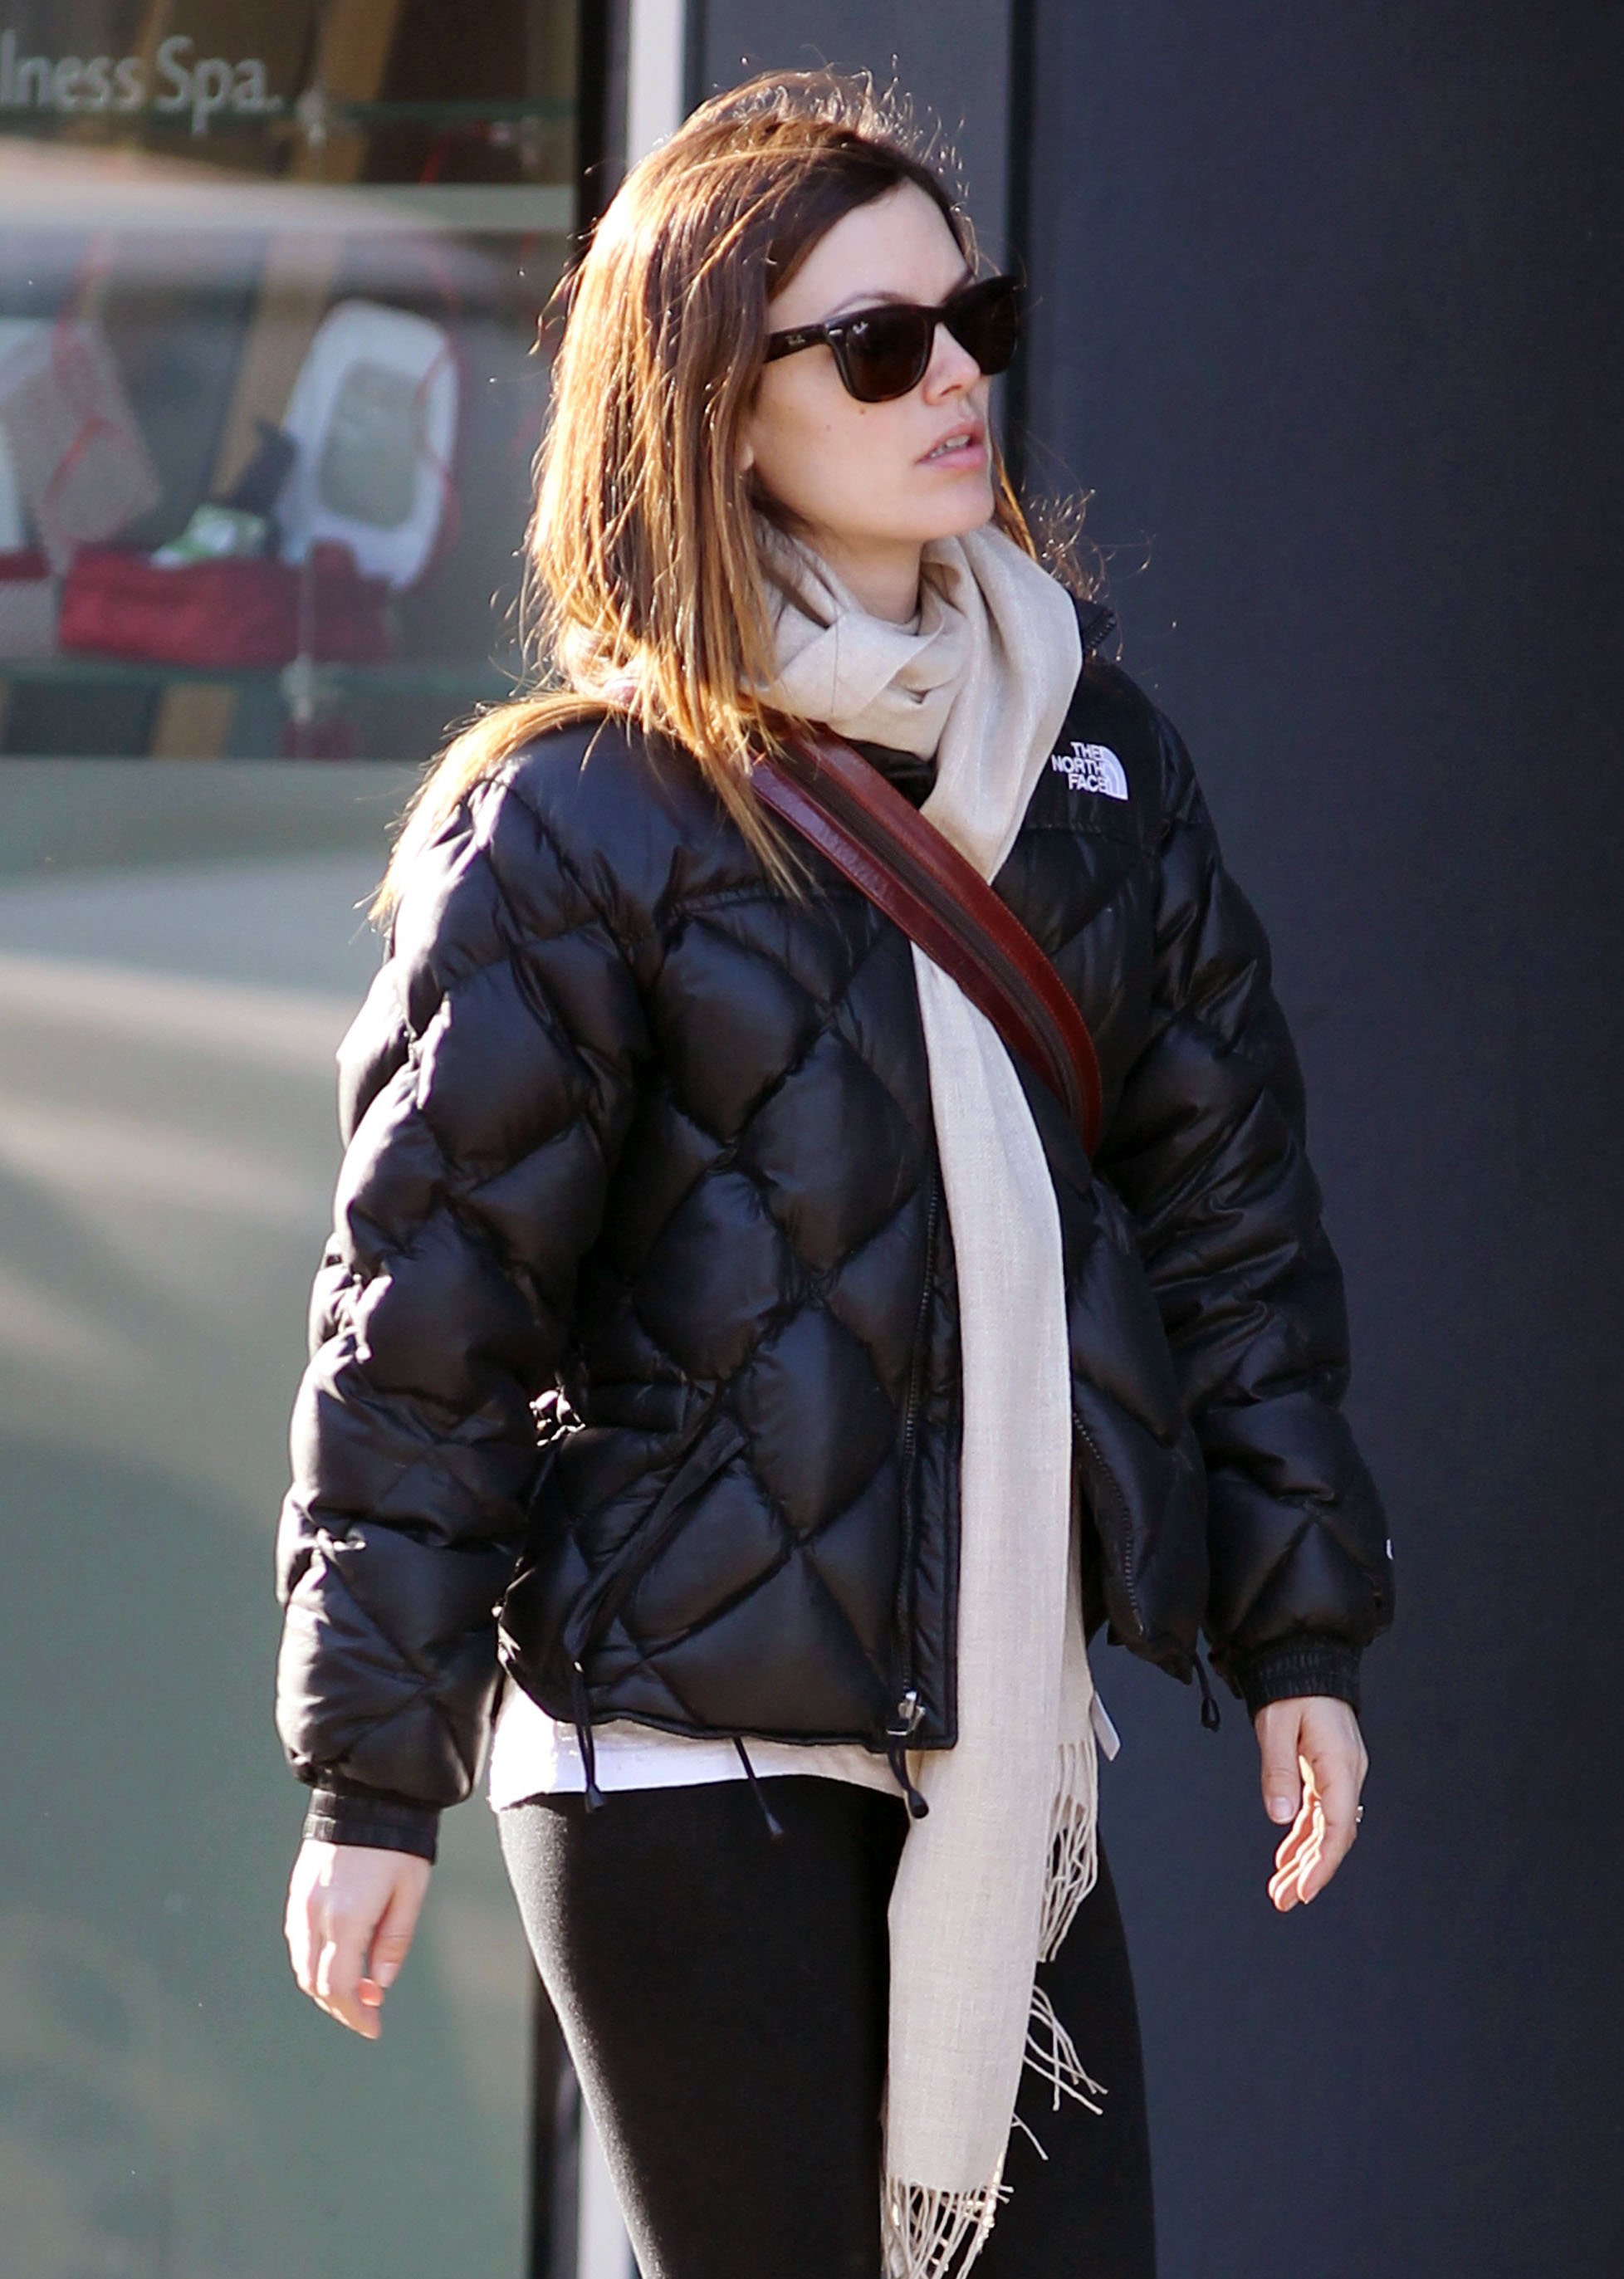 North face puffer jacket on celebrity